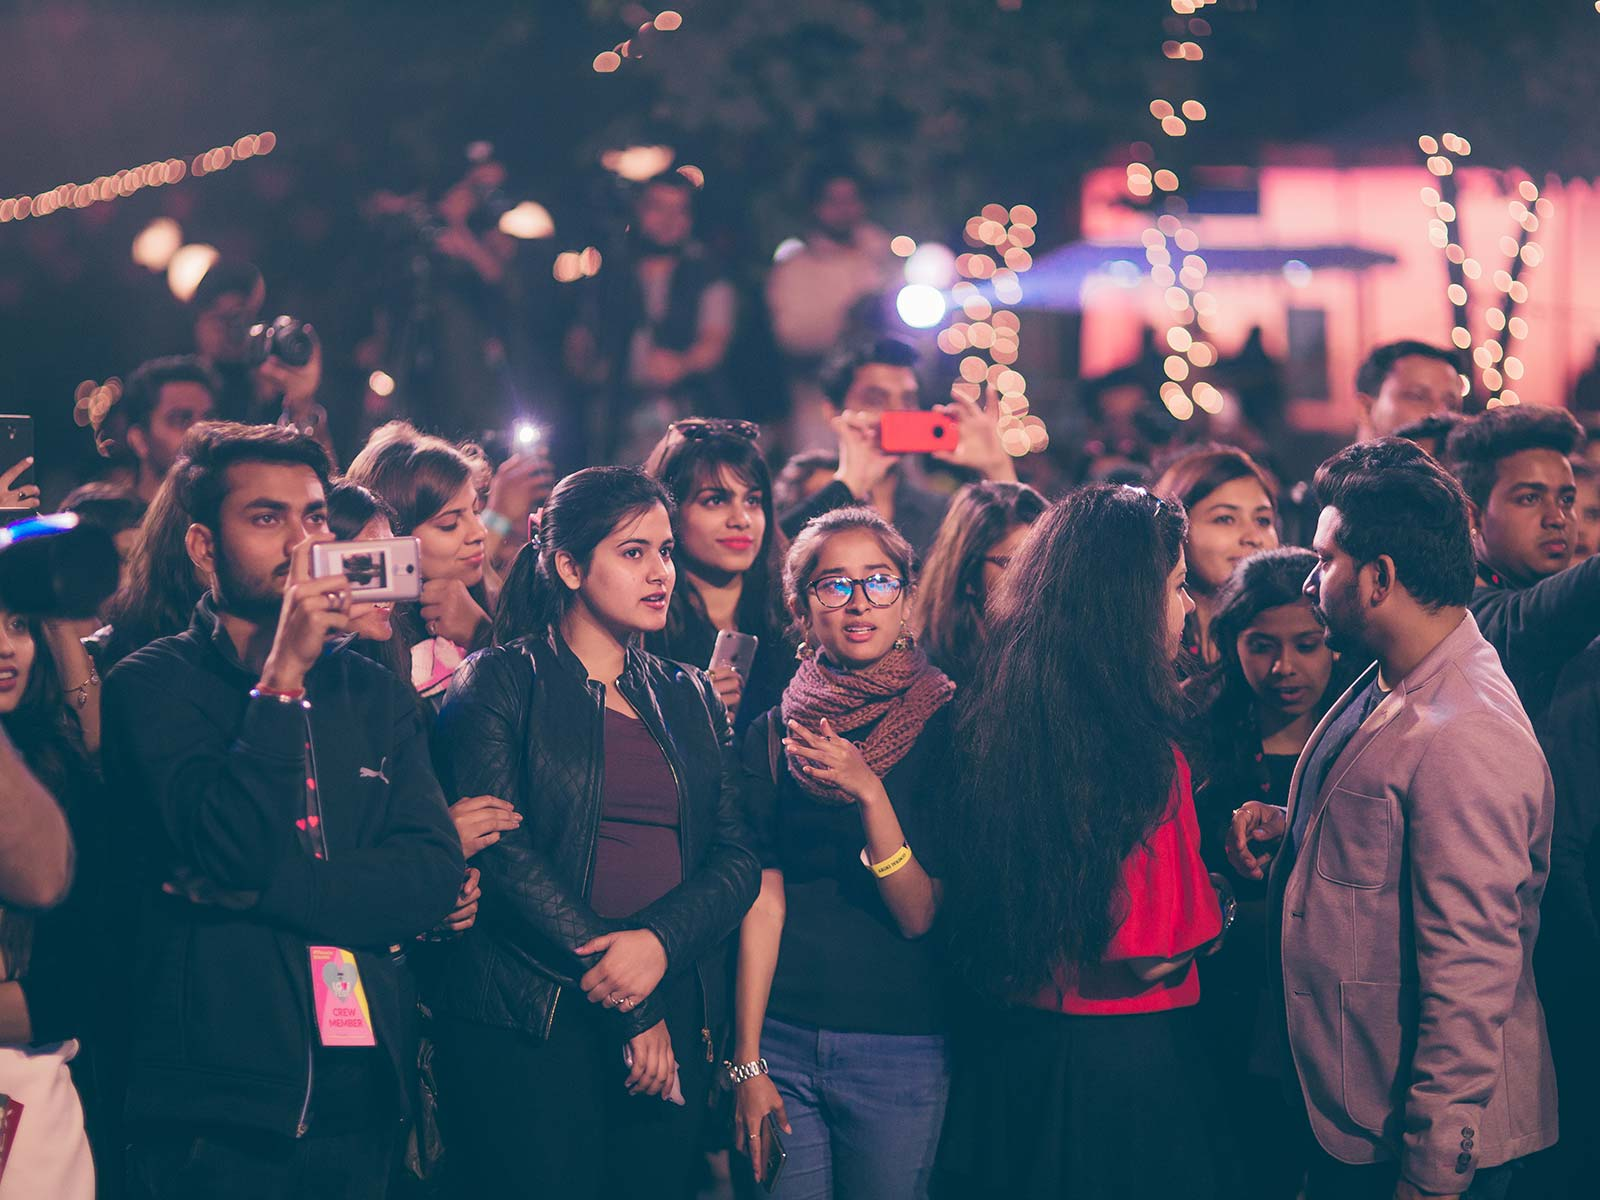 POPxo Love Fest attended by over 1000 girls and boys at the One Golden Mile in Delhi